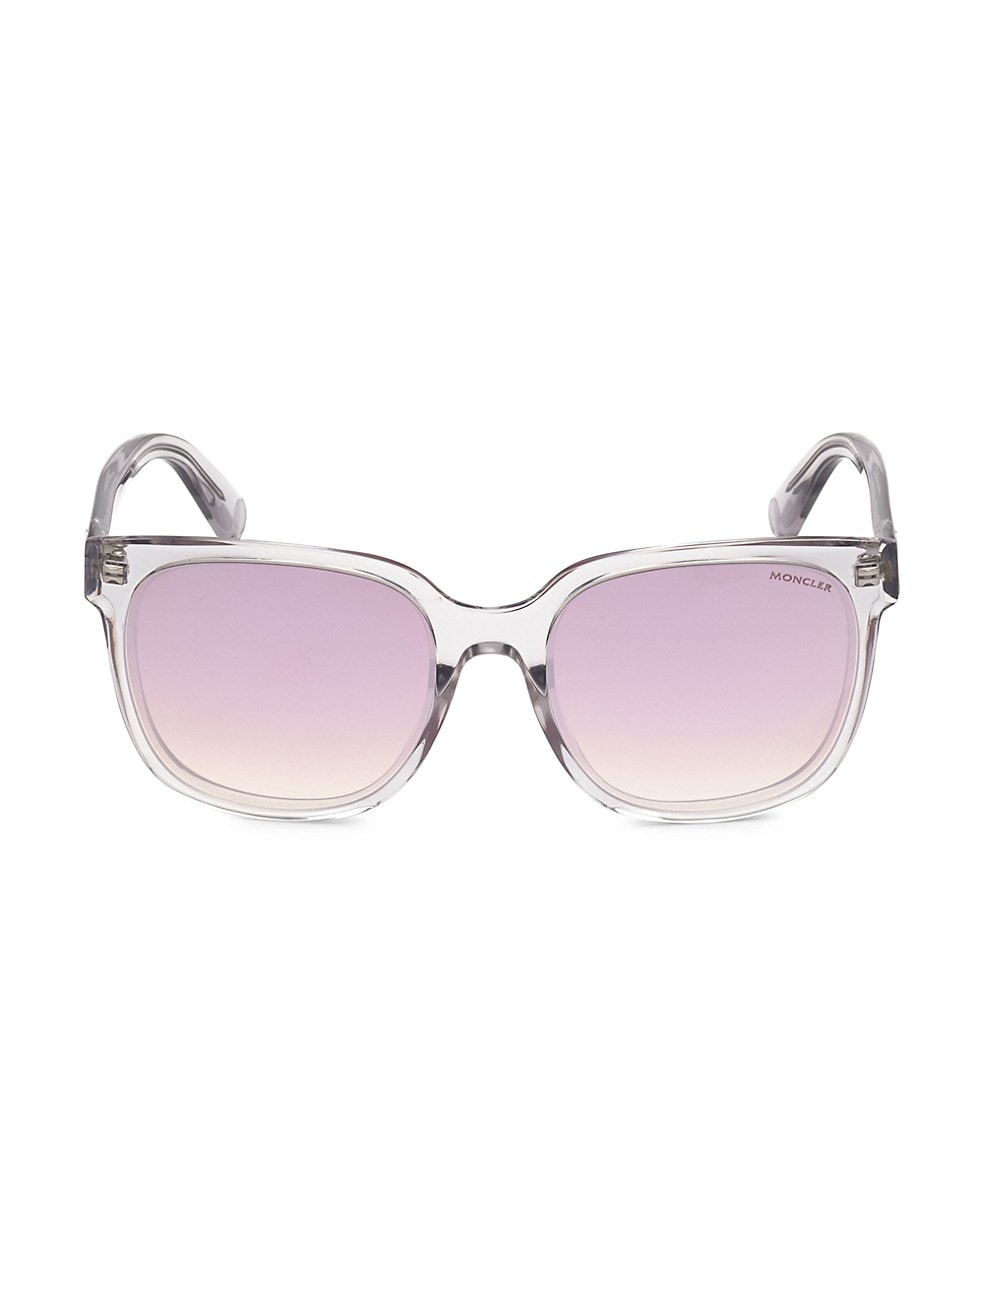 55MM Square Sunglasses by Moncler, available on saksfifthavenue.com for $355 Alessandra Ambrosio Sunglasses Exact Product